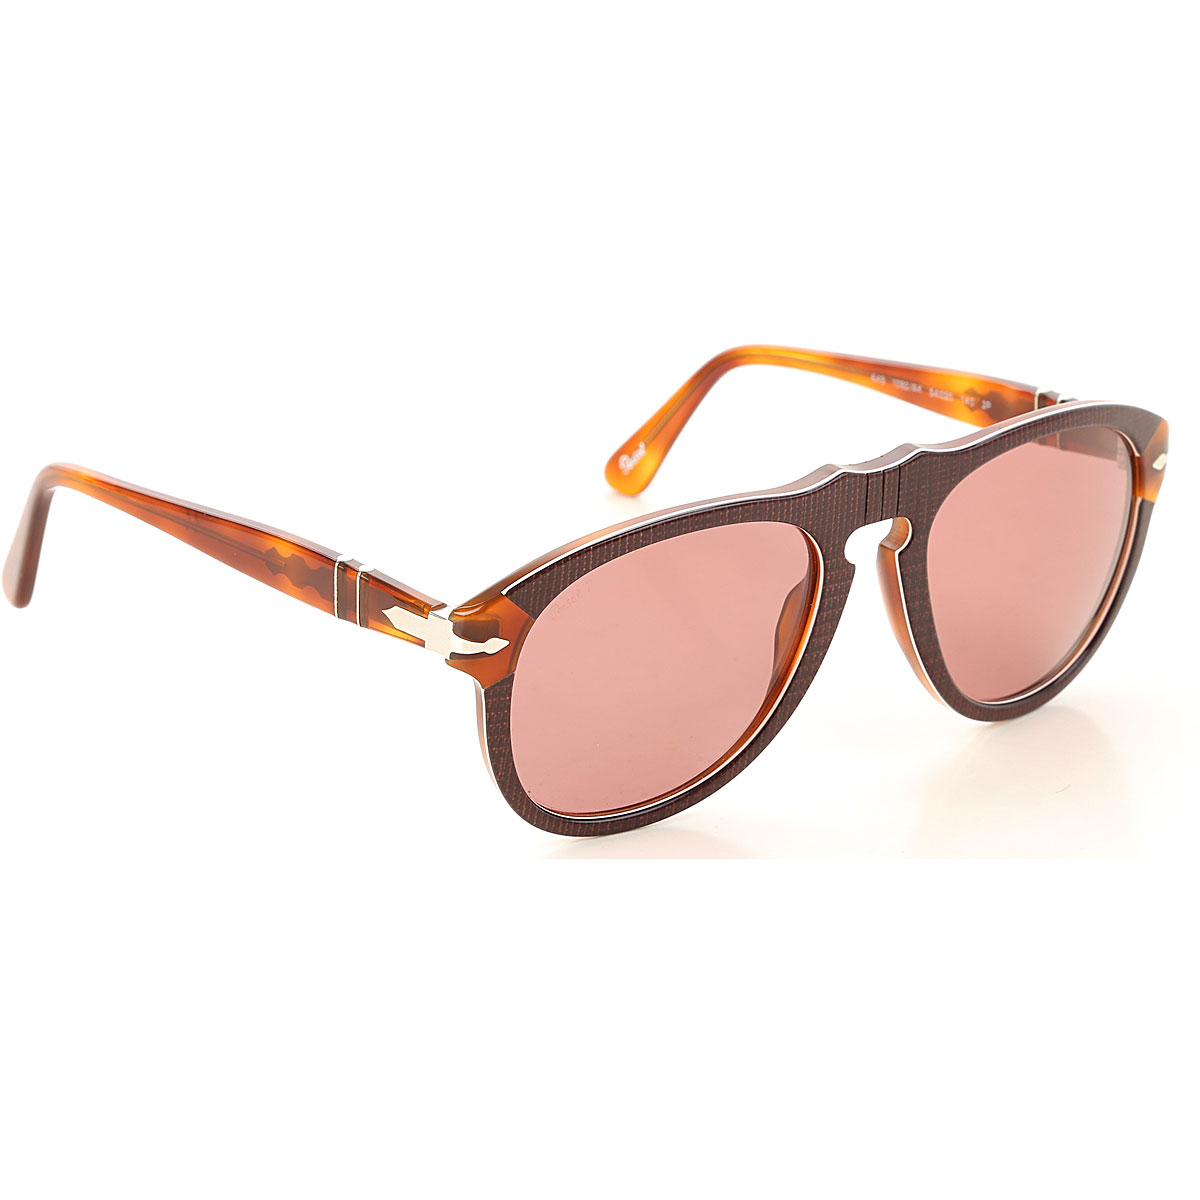 Persol Sunglasses On Sale, Burgundy Prince Of Wales, 2019